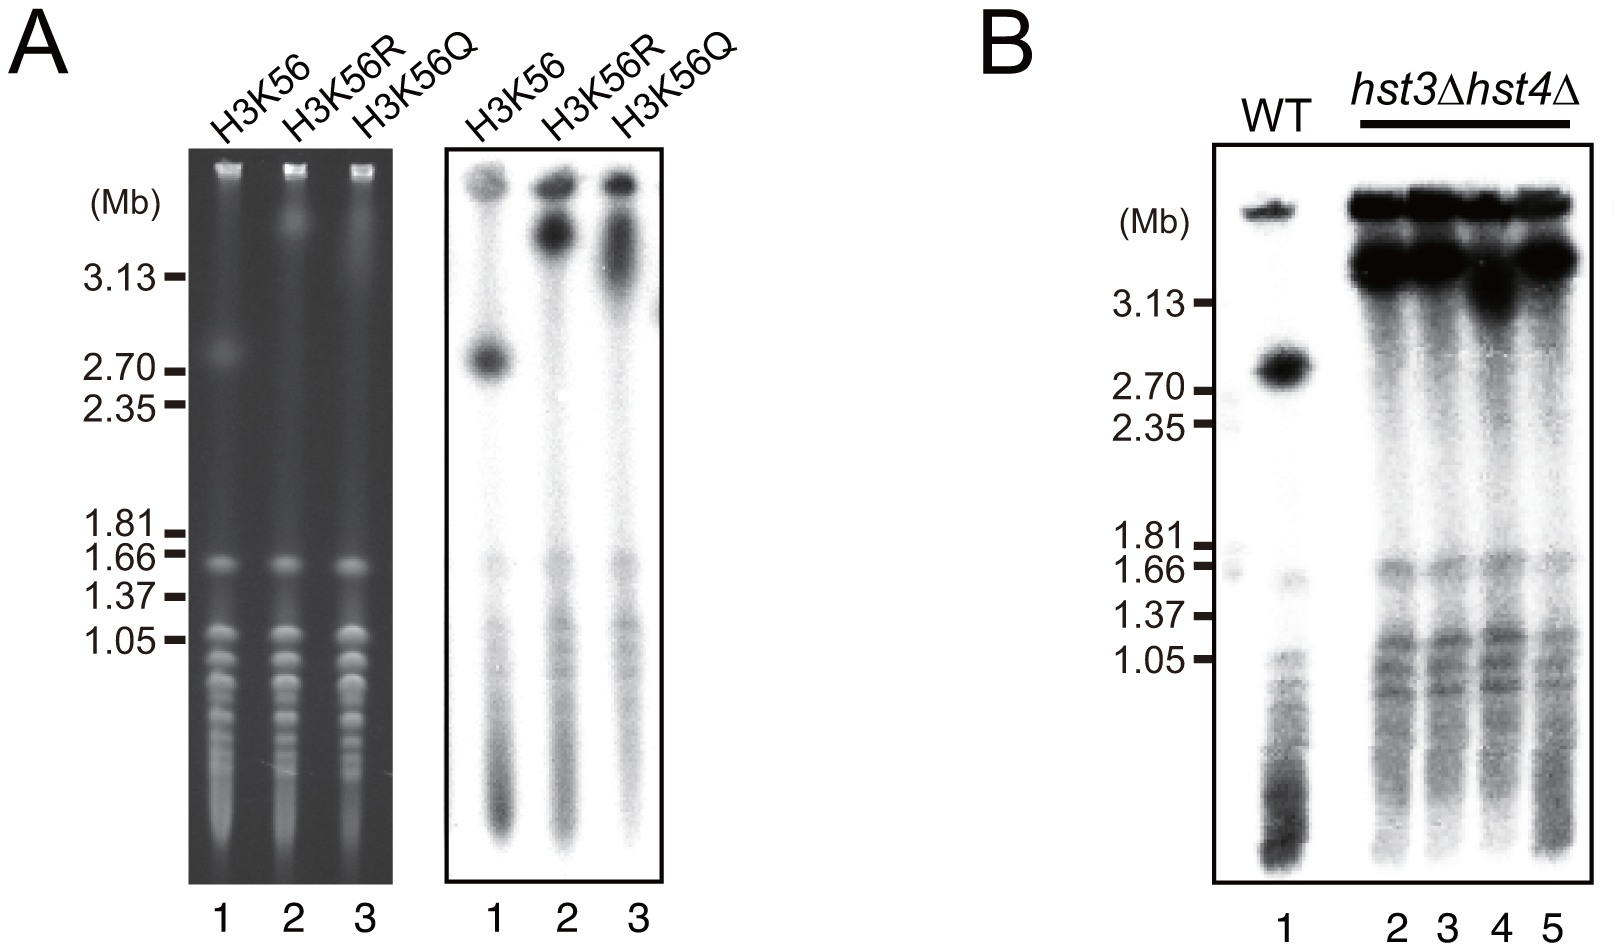 Dysfunction of histone H3K56 acetylation and deacetylation induces hyper-amplification of rDNA copy number.